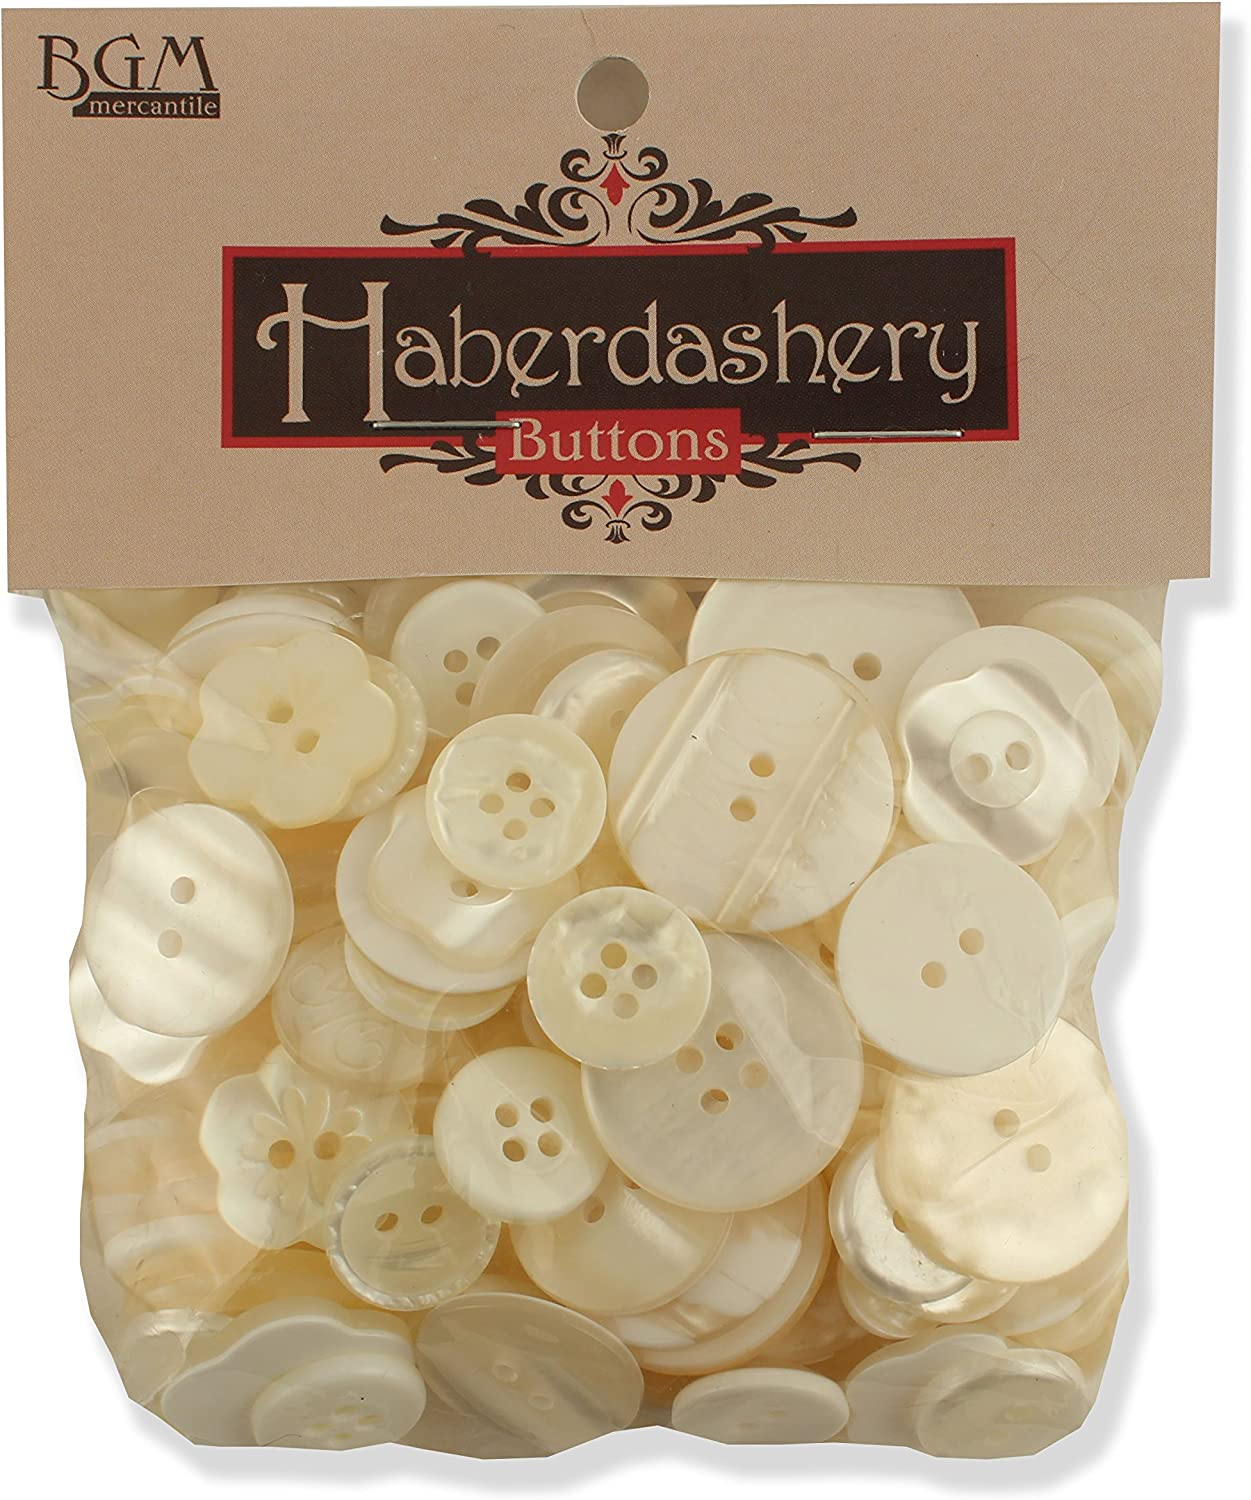 Ivory//Pearl Buttons Galore Haberdashery Button